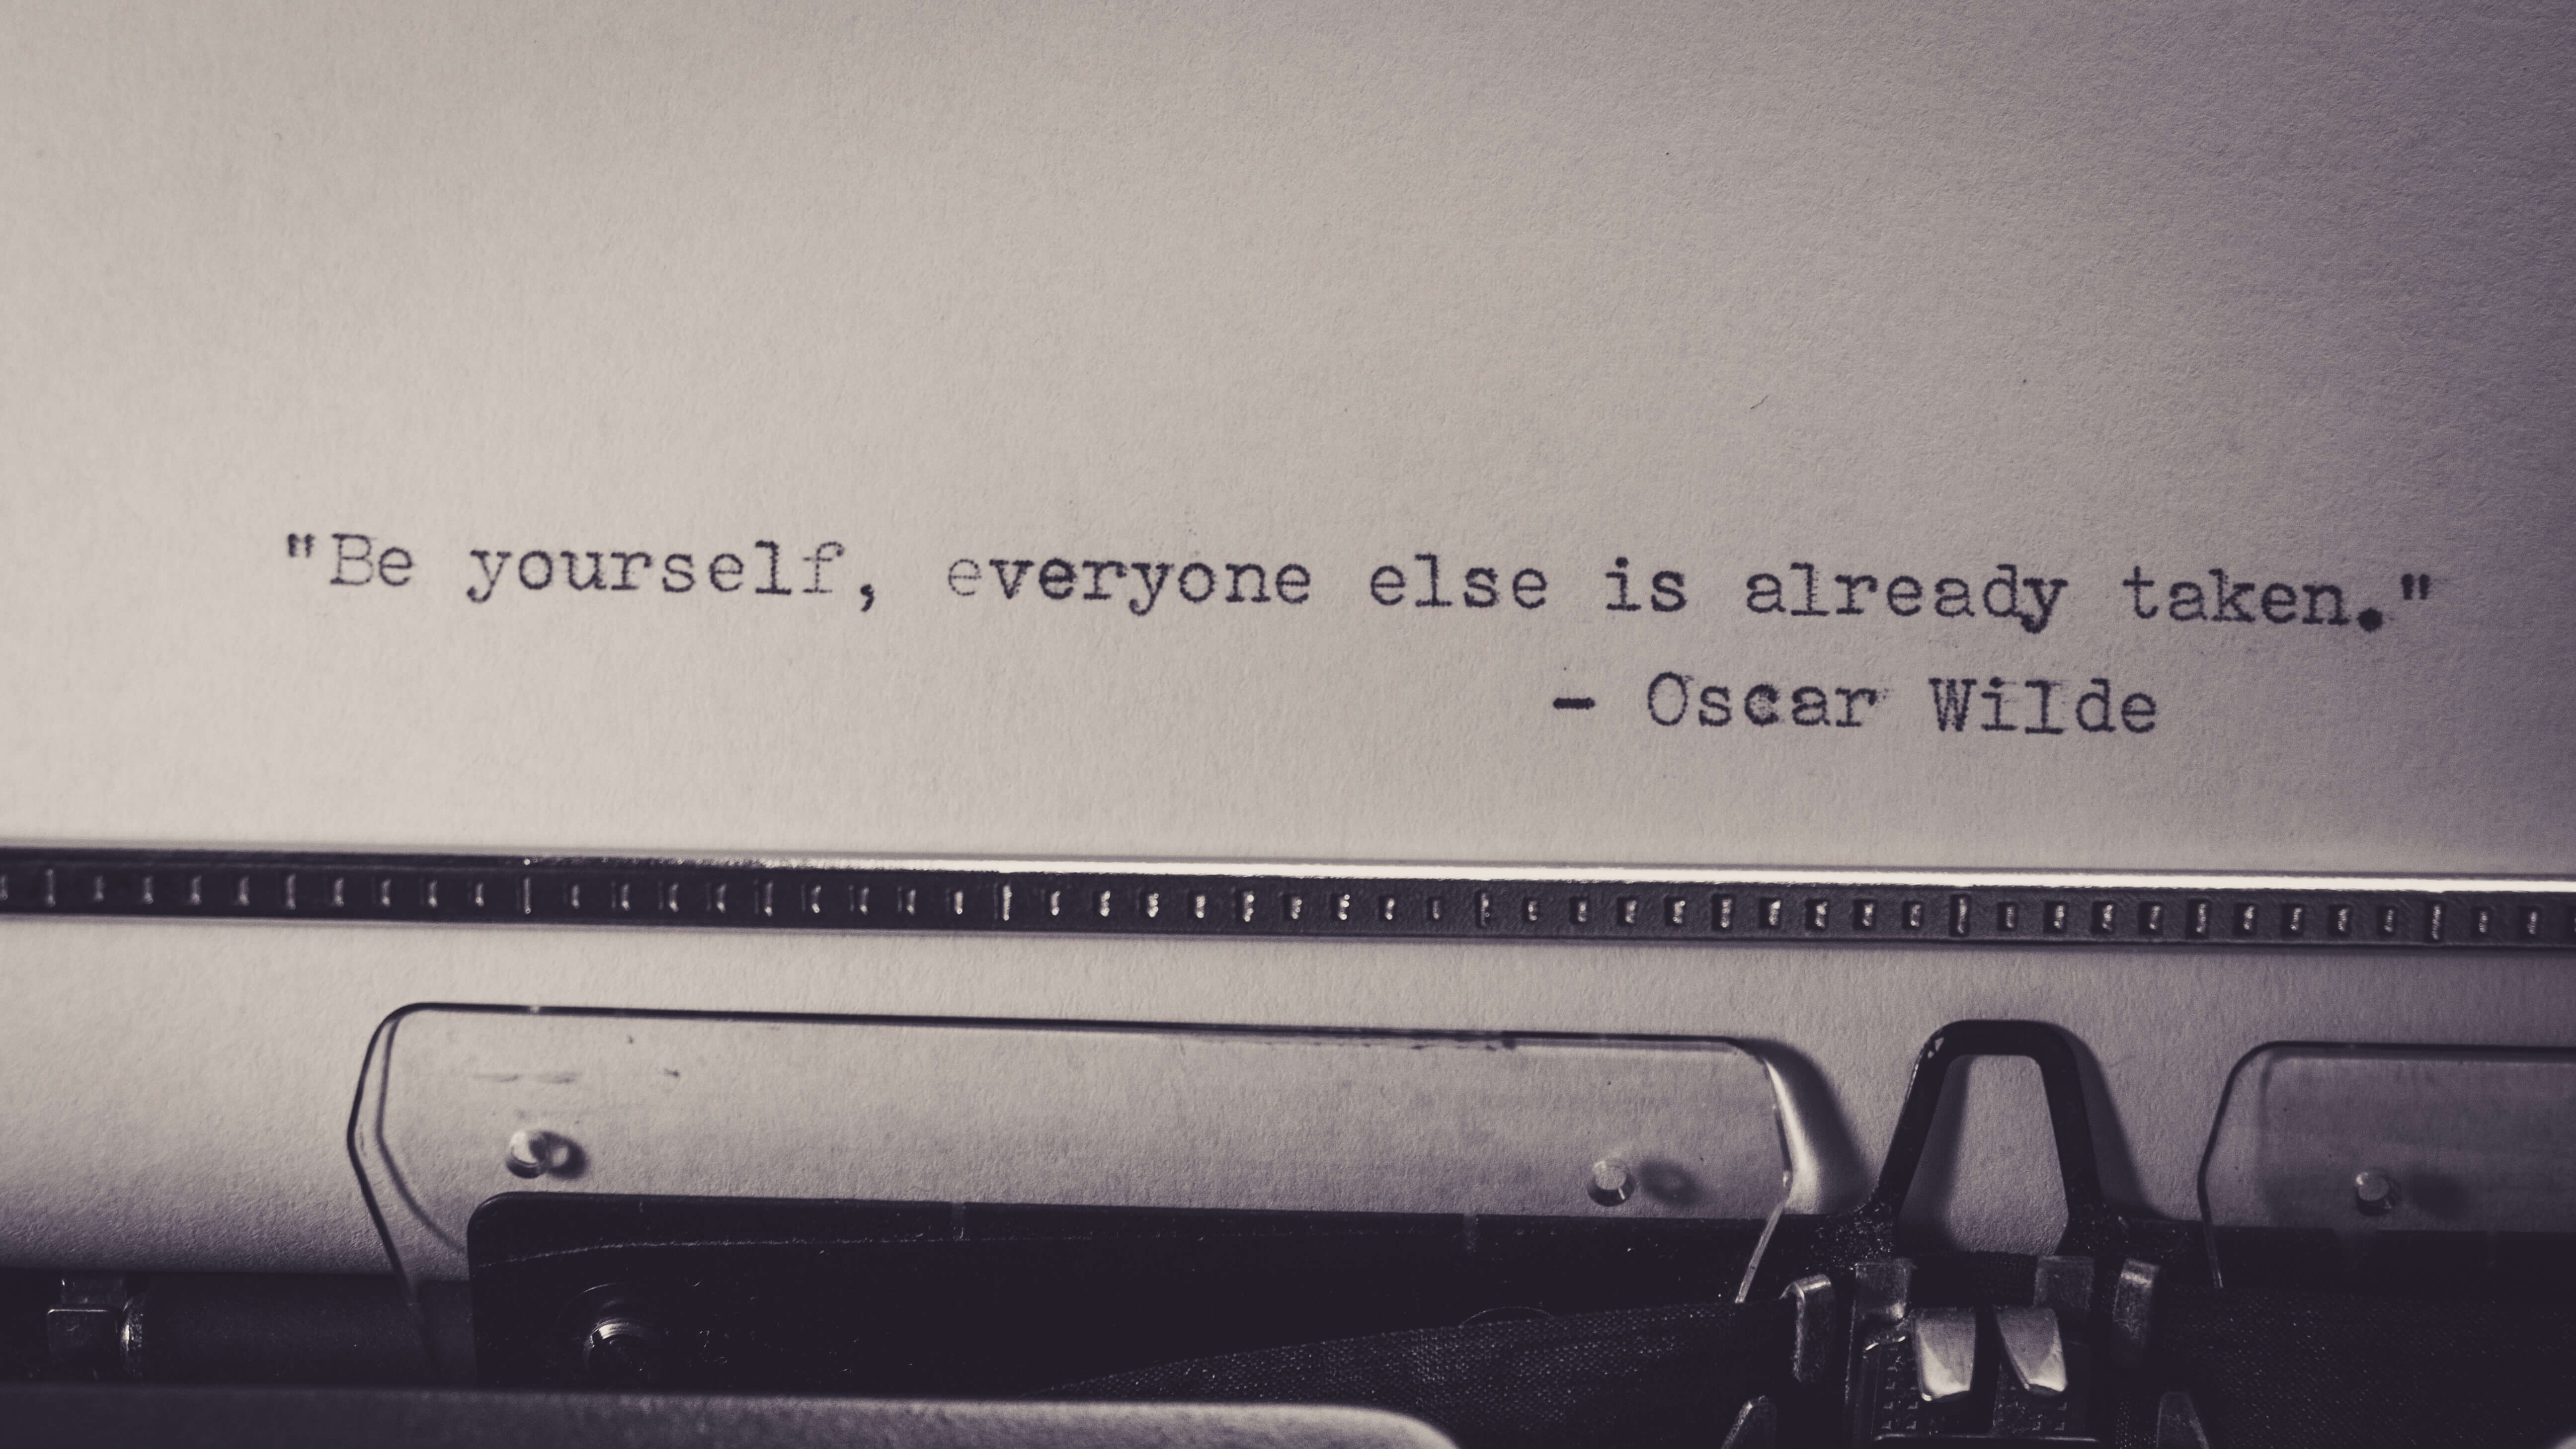 Oscar Wilde quote typed out with a typewriter